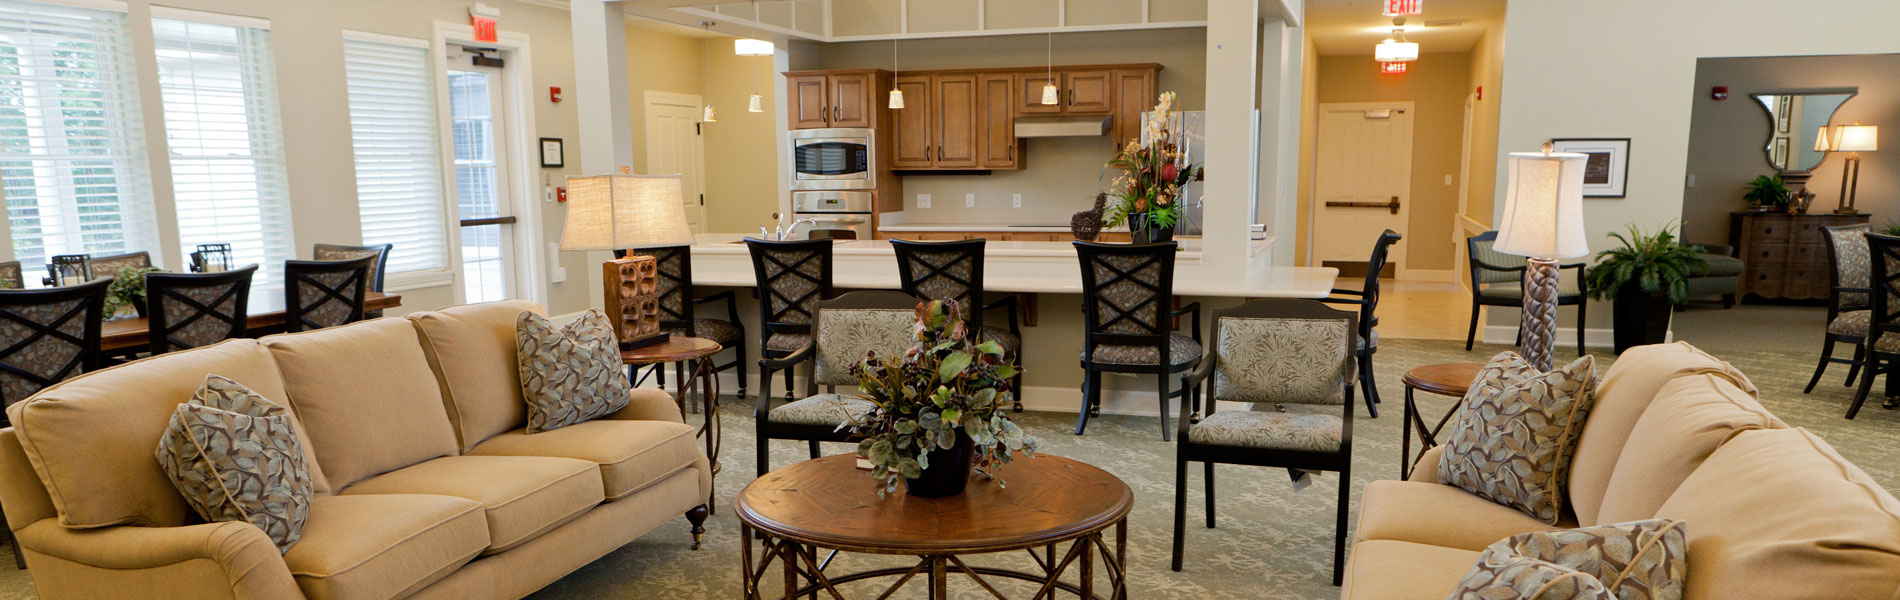 Common gathering area and lounge in Hickory Hall Memory Care